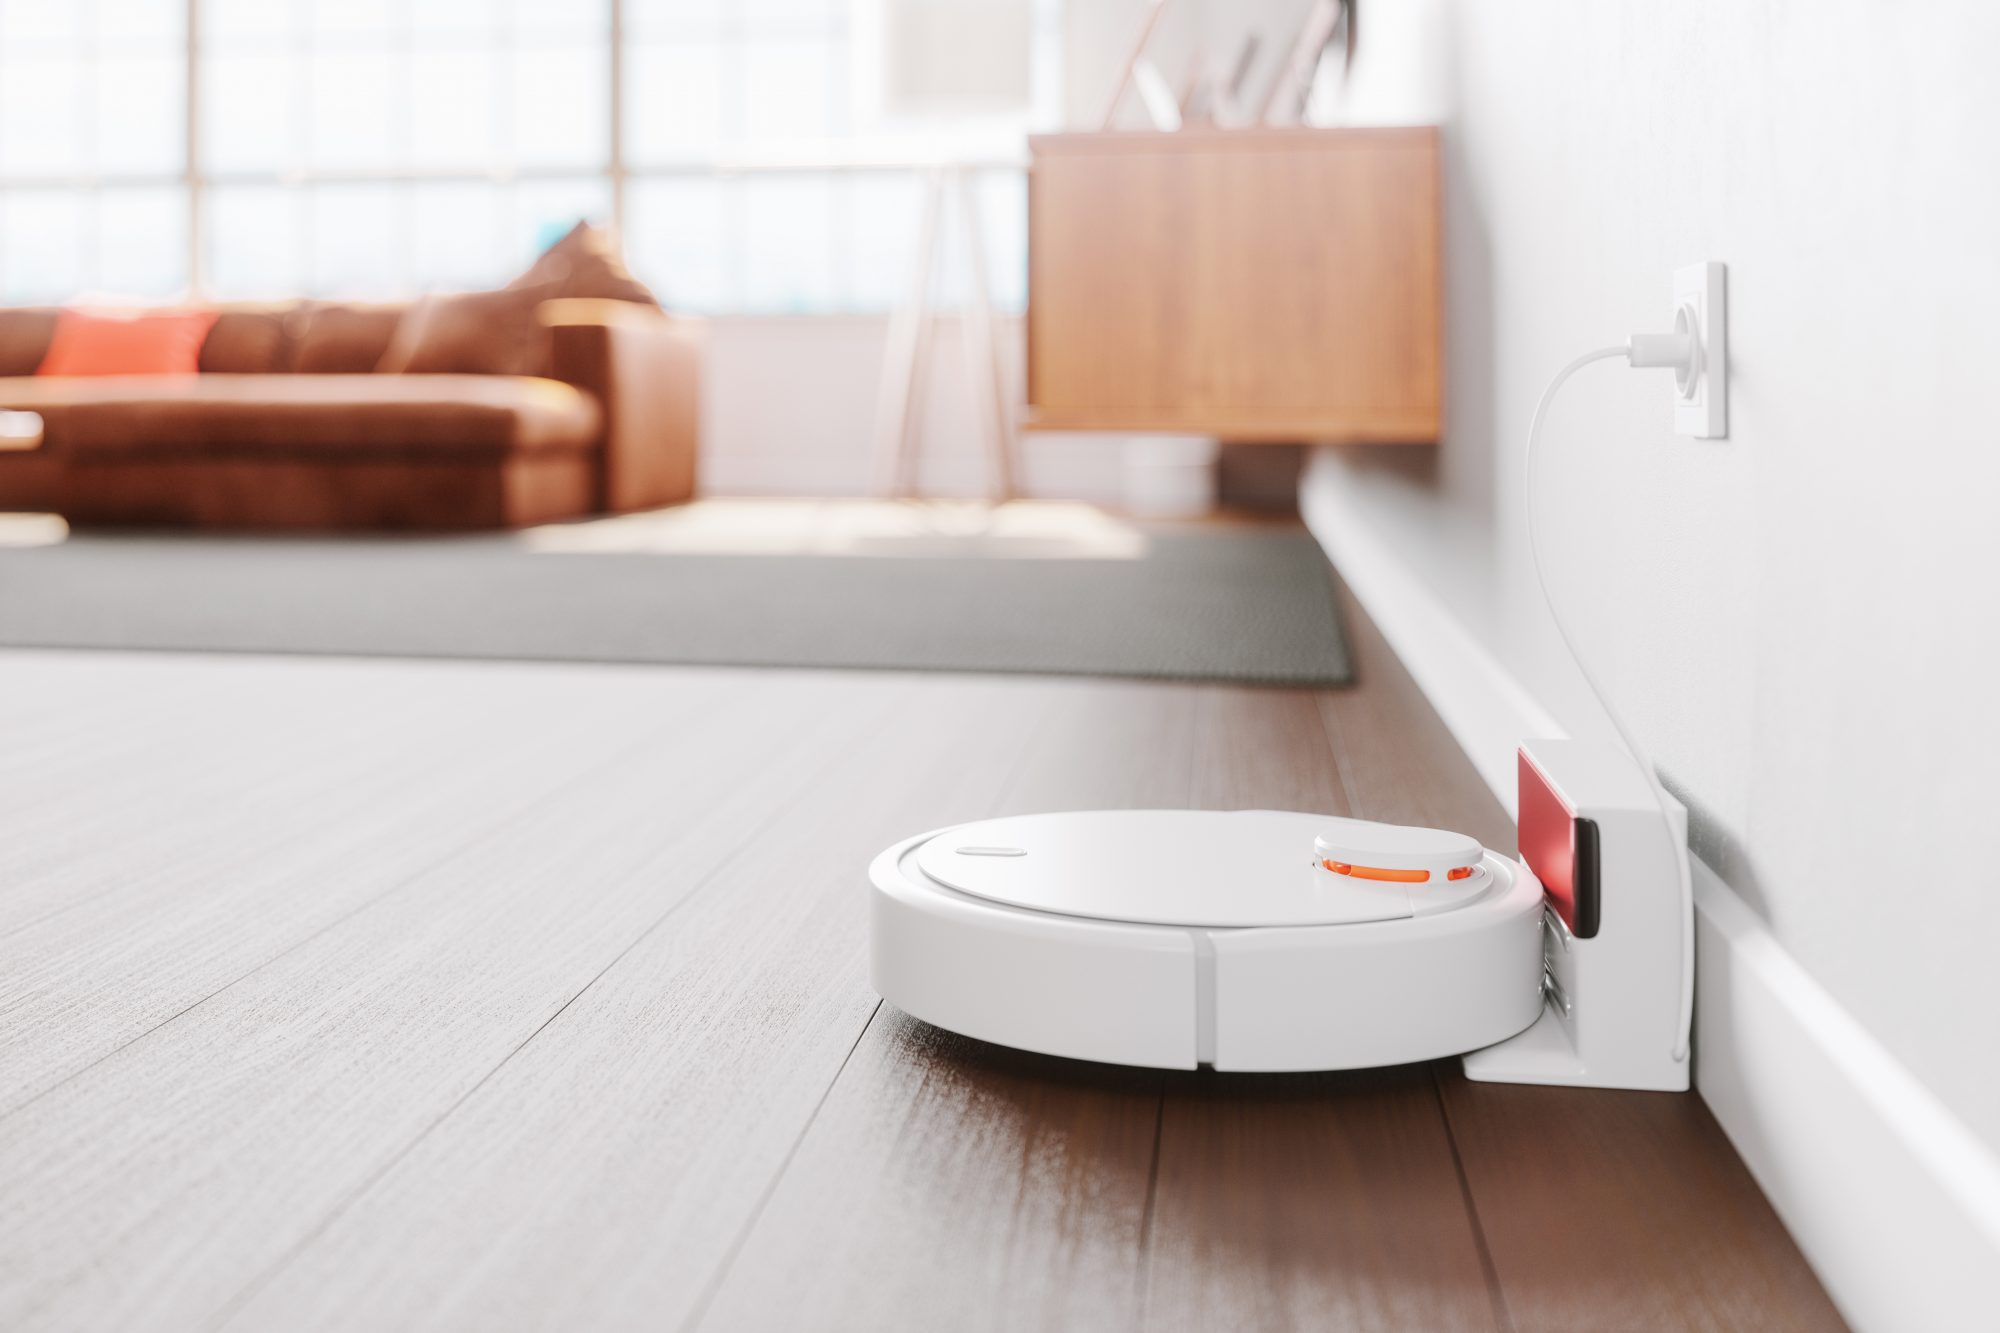 robot vacuum clean in docking station